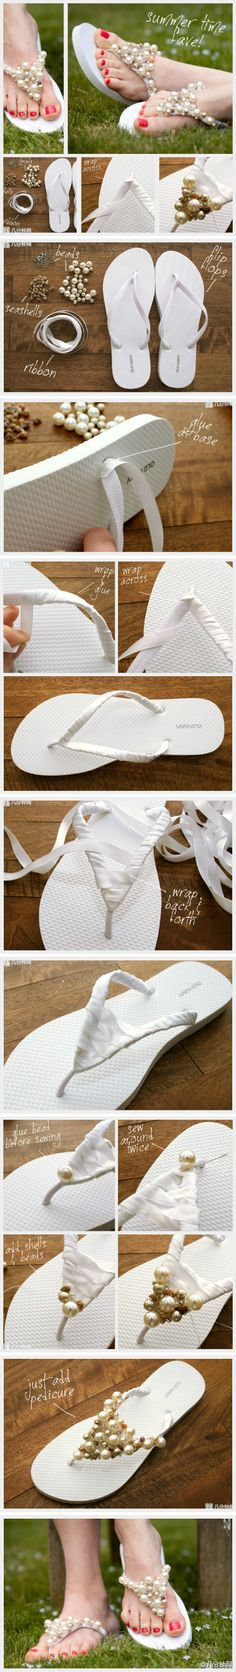 DIY: Fun flip flops! Can be done in so many styles and colors! or with lace